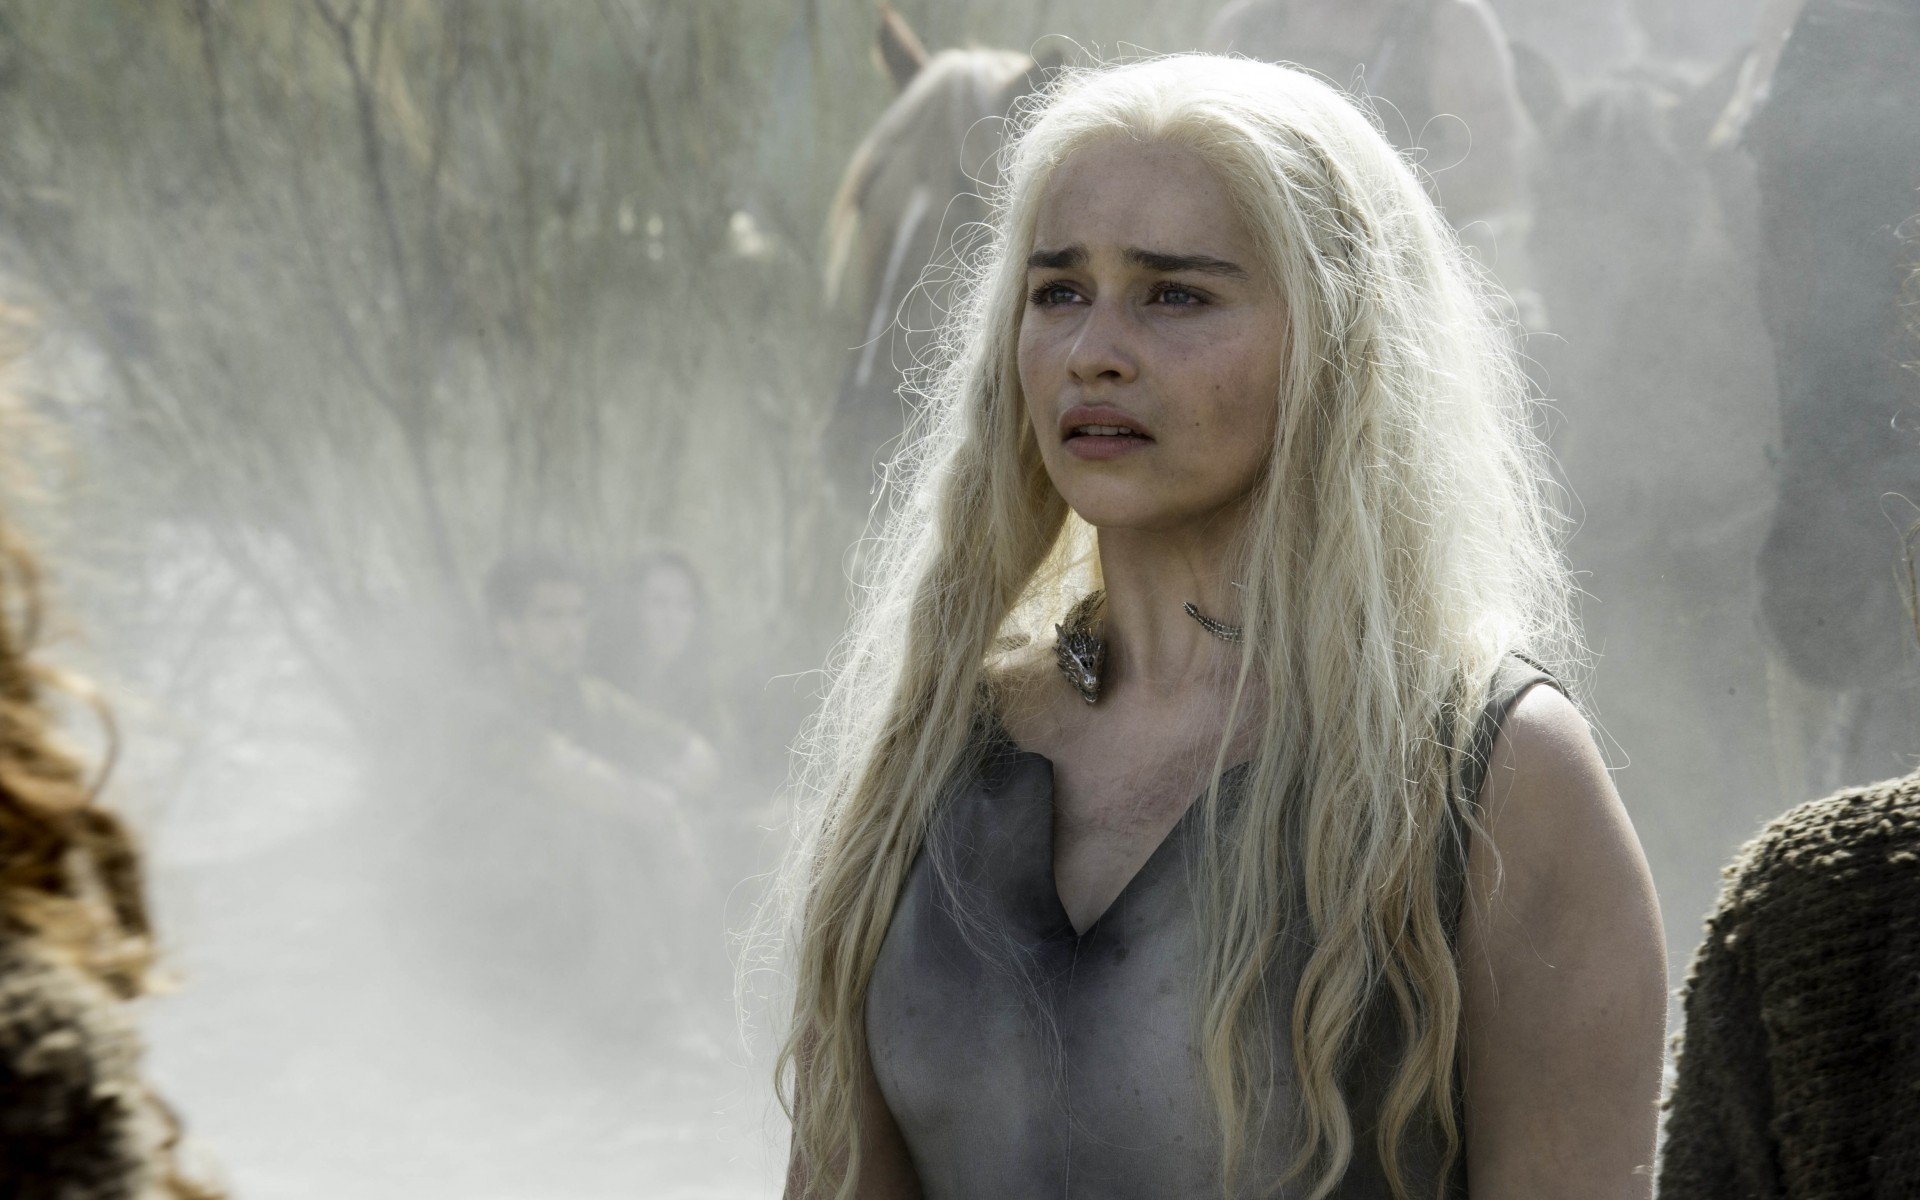 Serie-TV-daenerys-targaryen-game-of-thrones